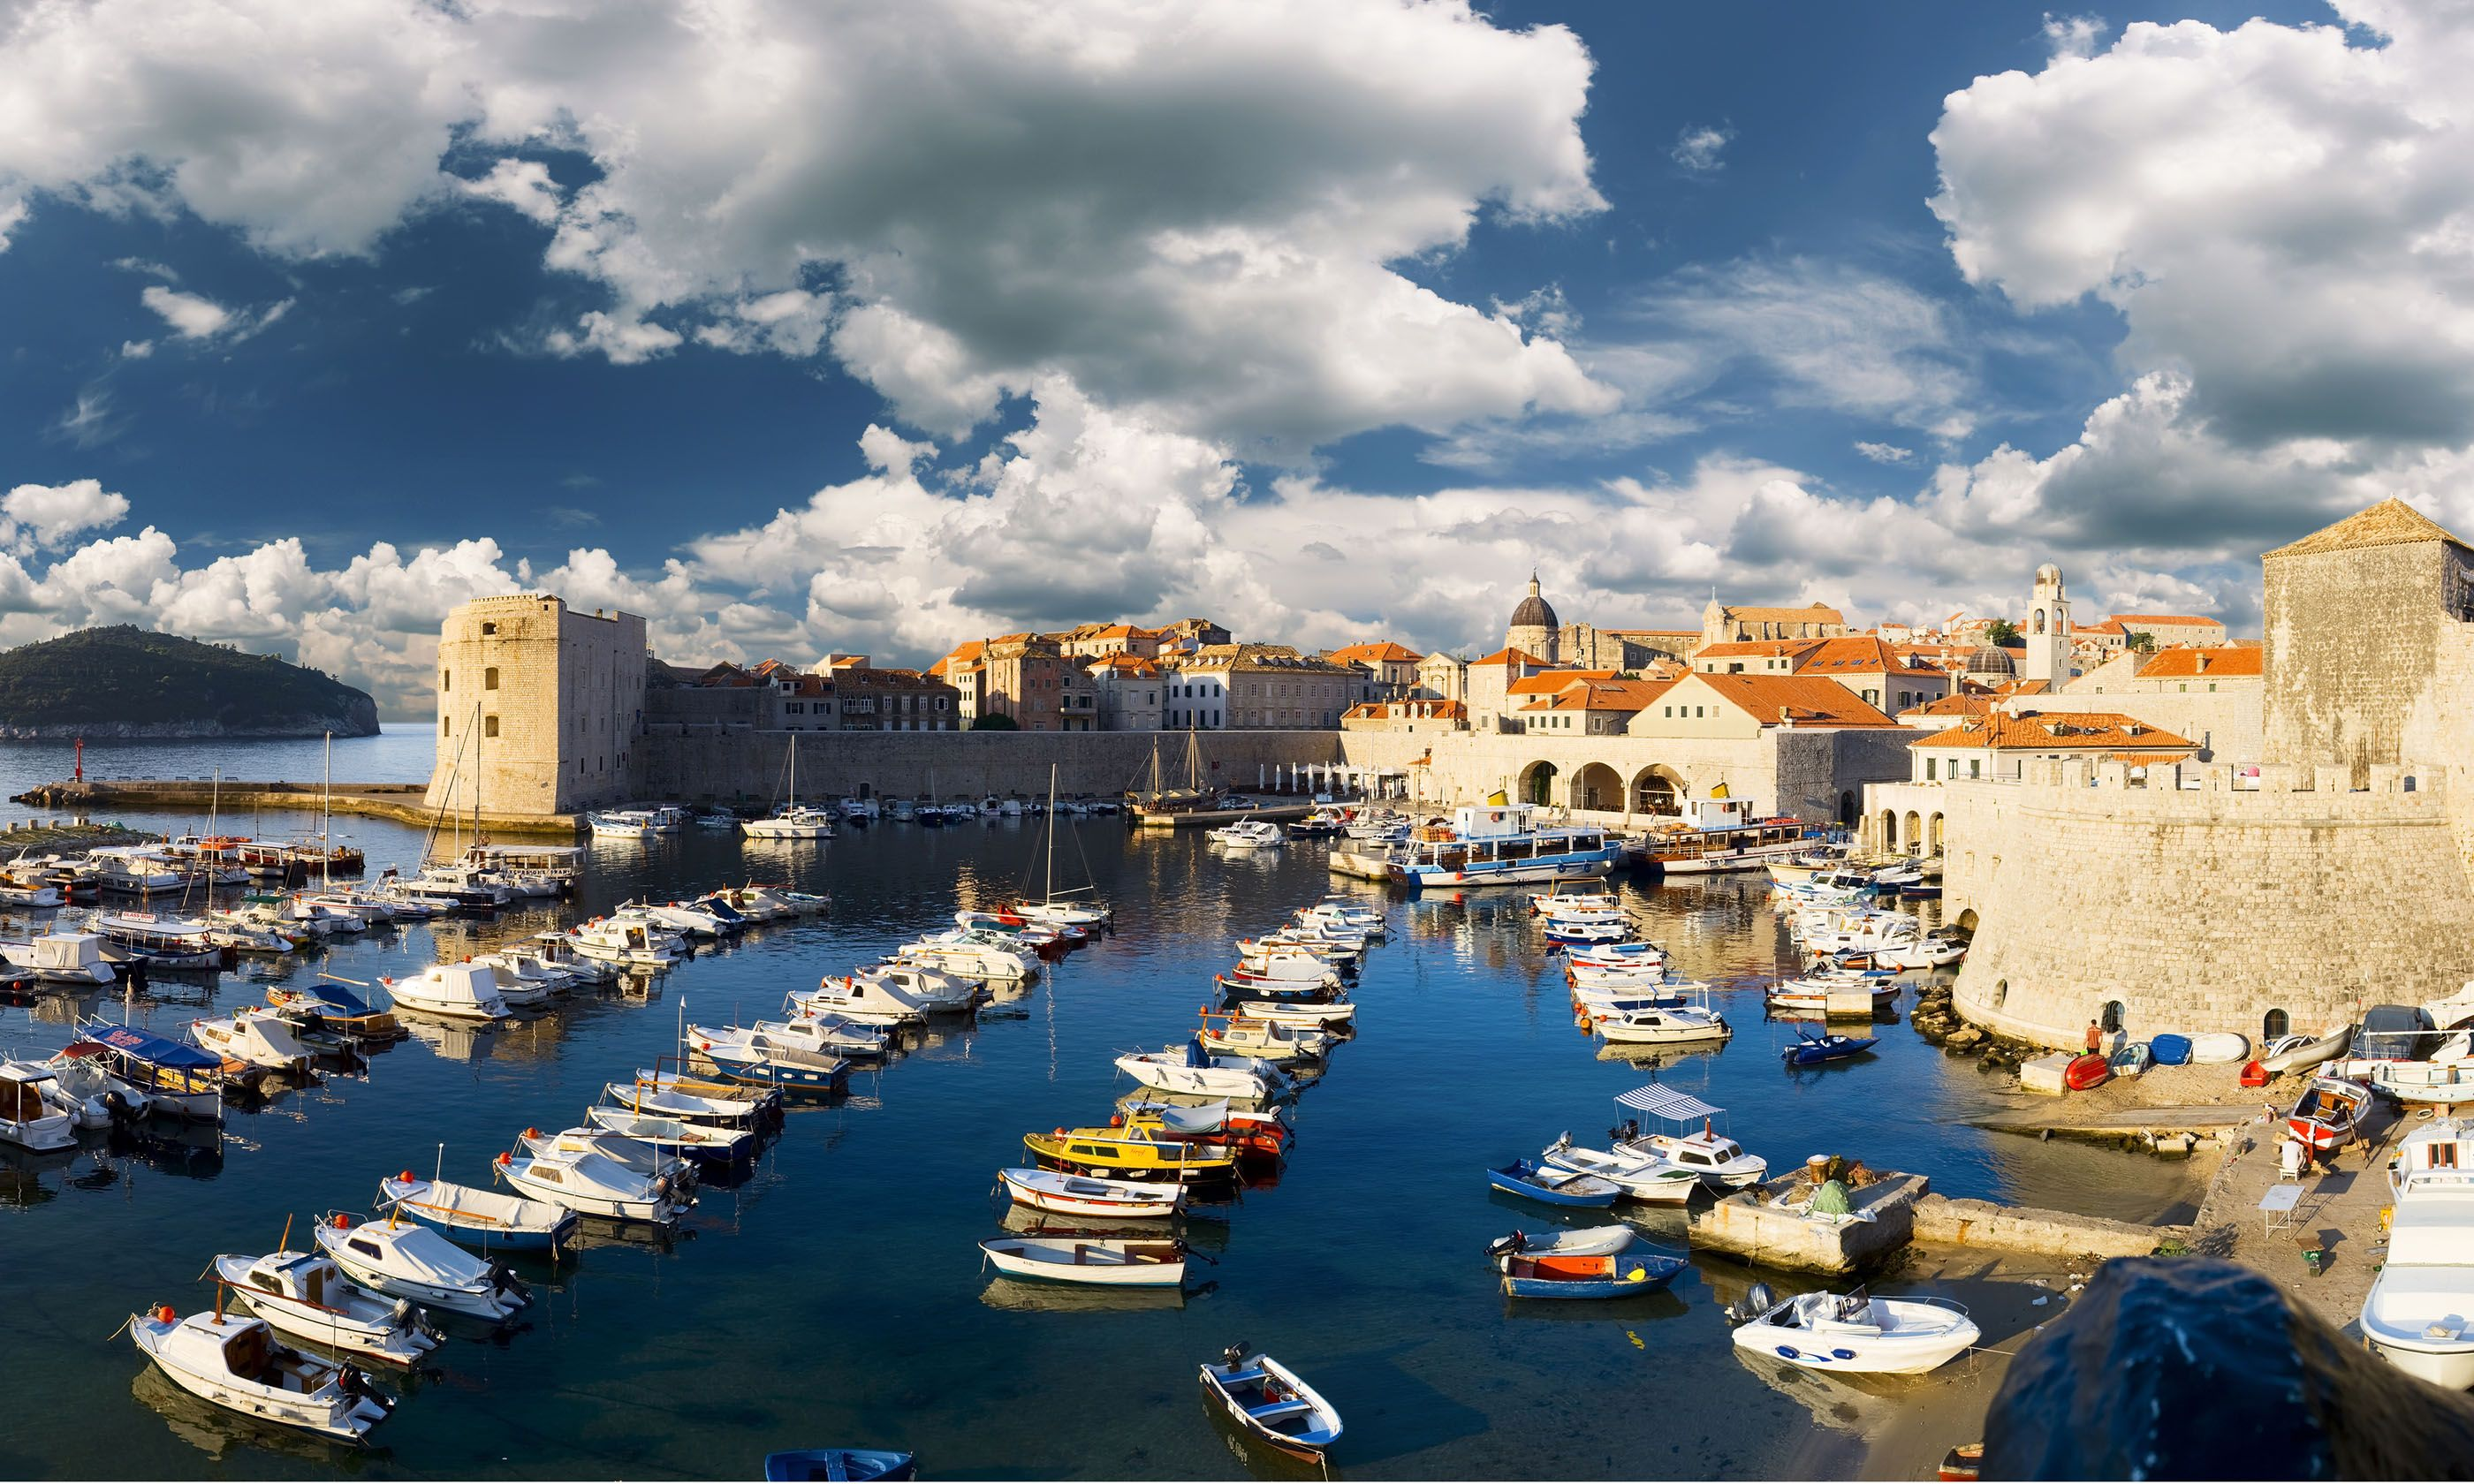 Old port, Dubrovnik (Dreamstime)